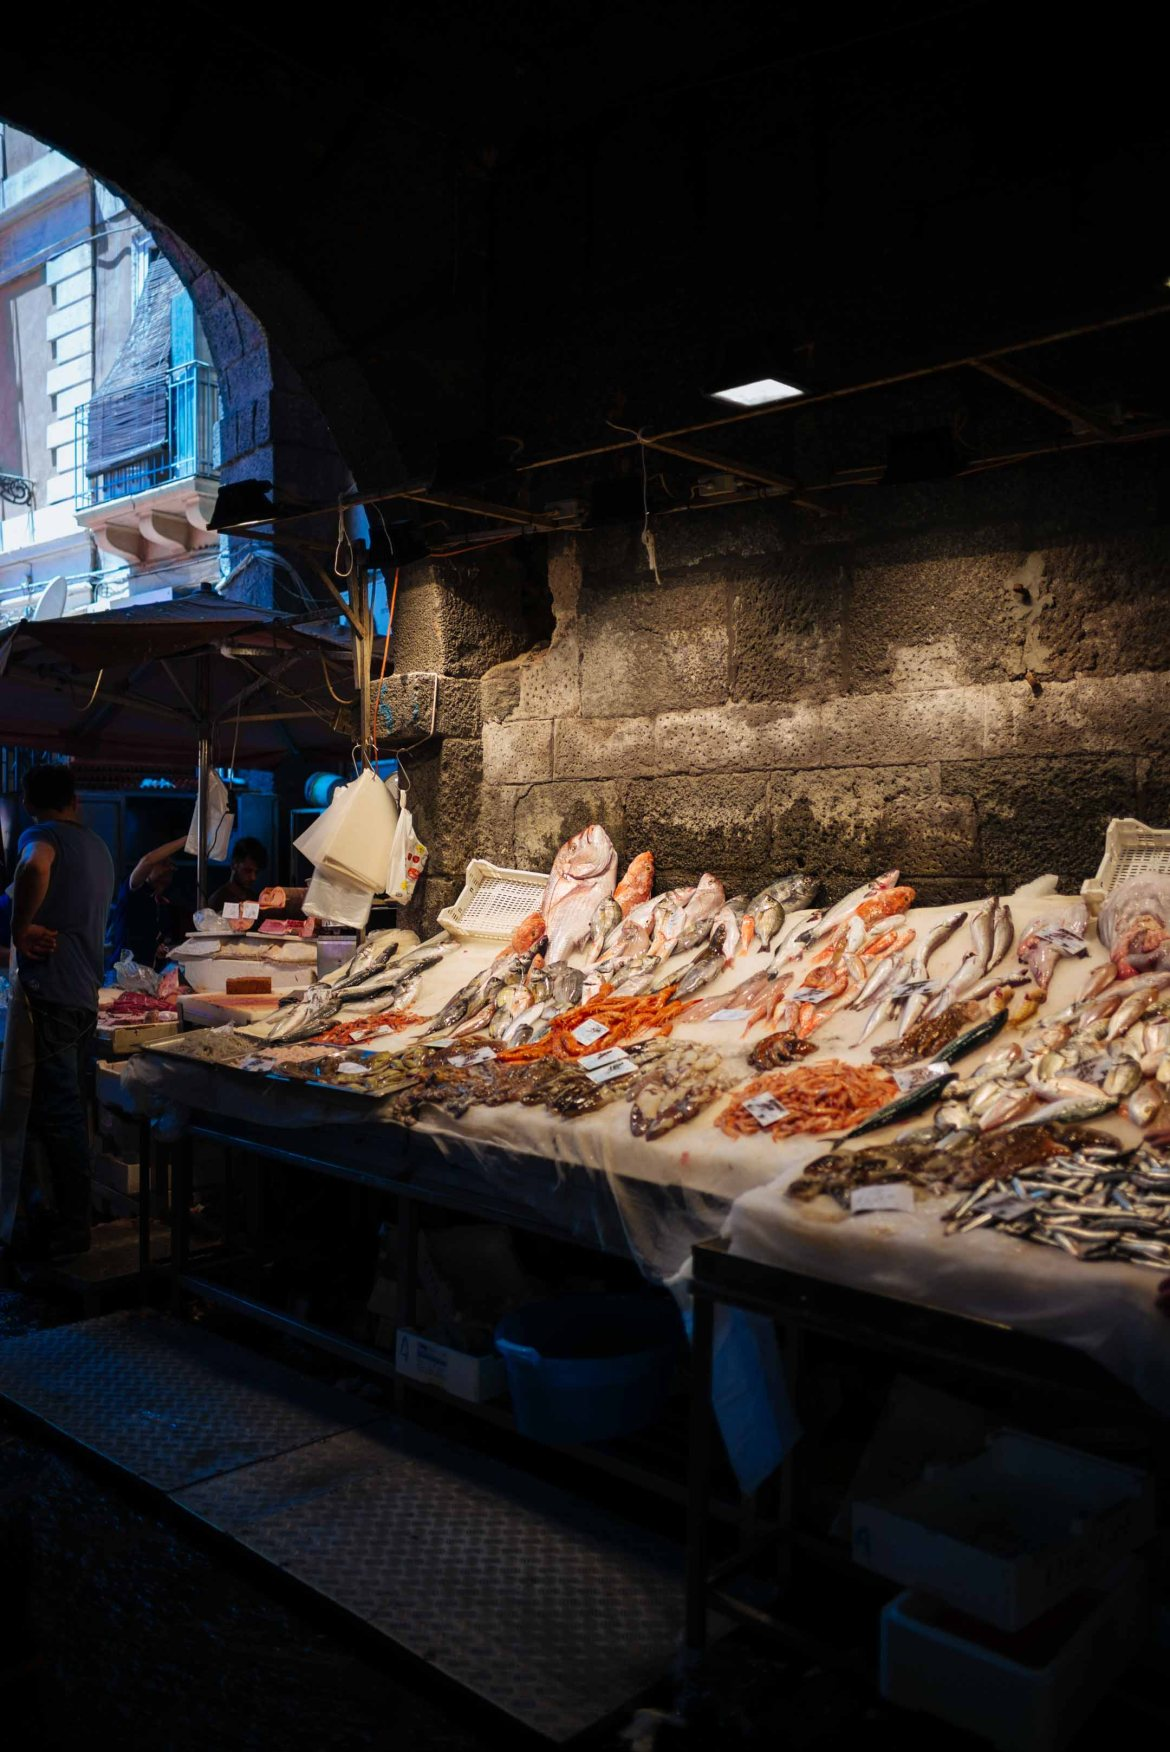 The Taste Edit buys the best fish at the historic Catania Fish Market in Sicily Italy.